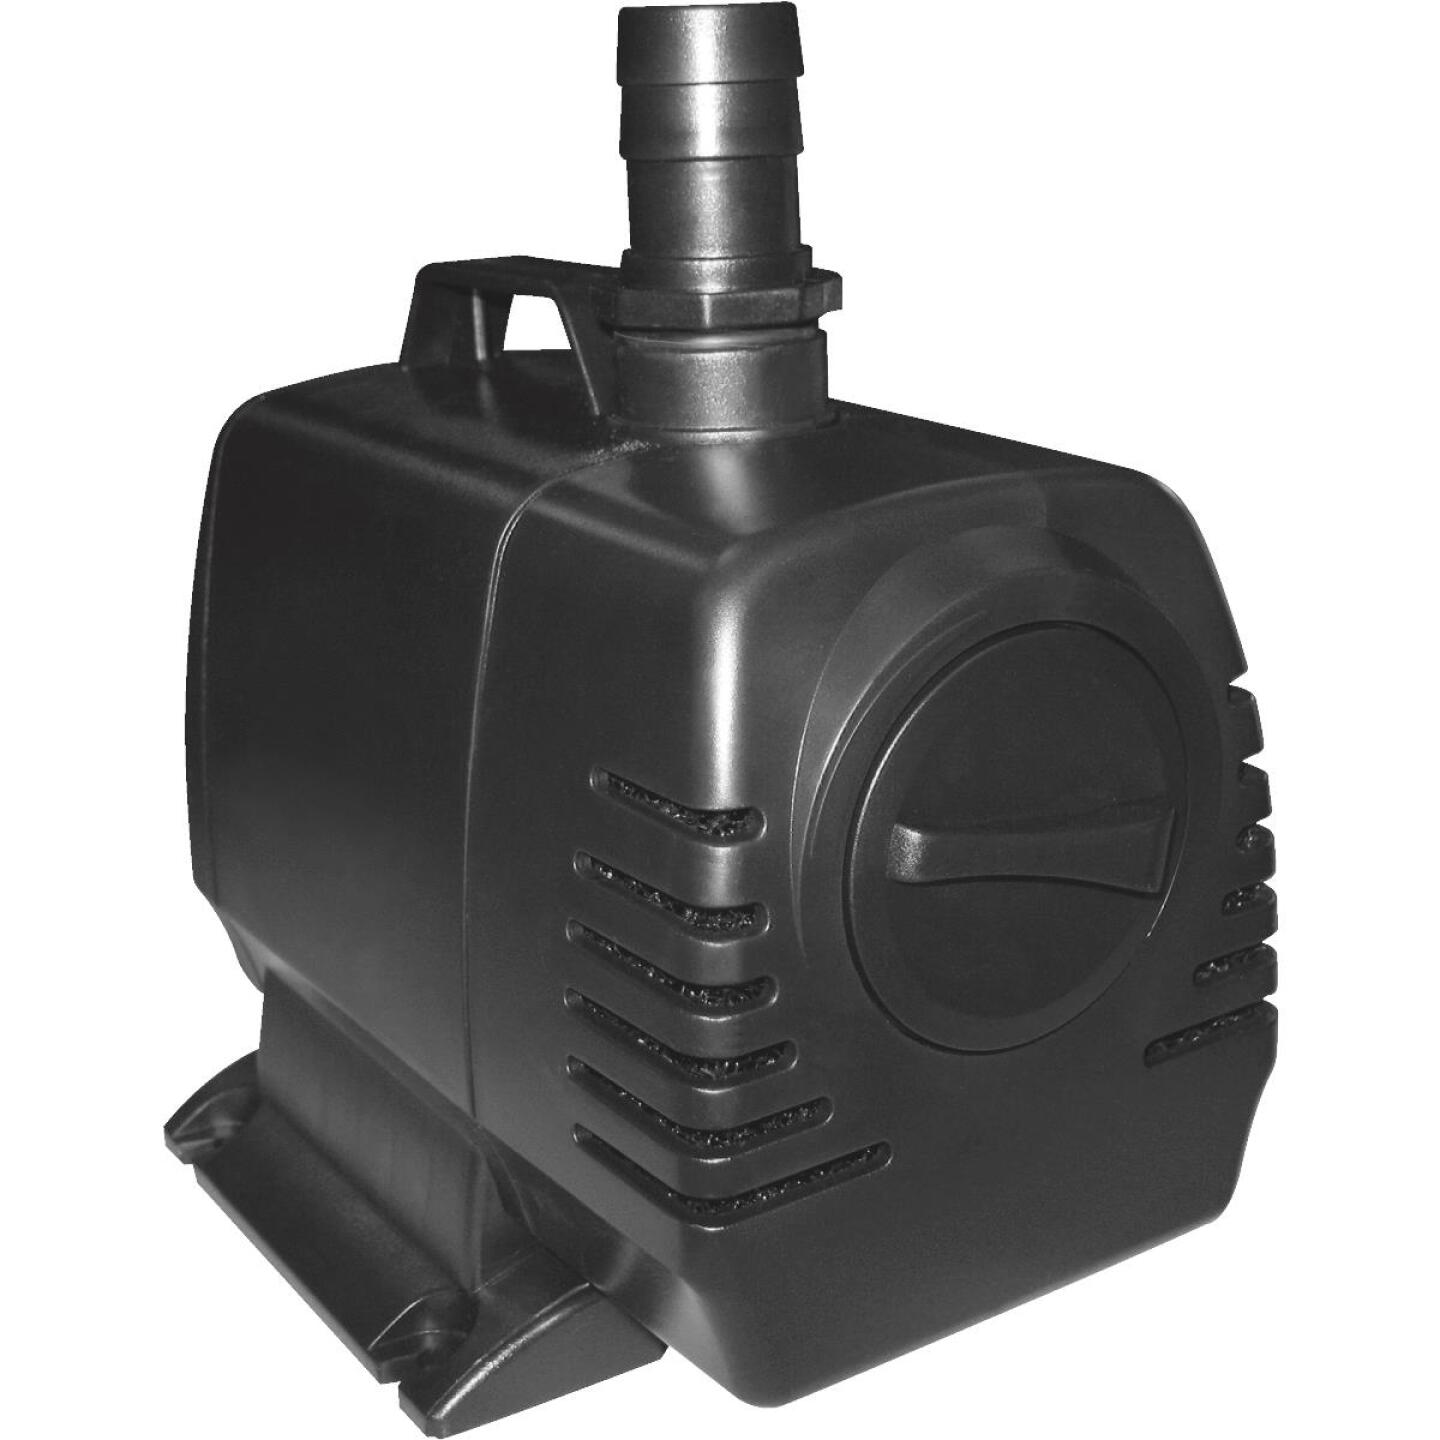 PondMaster Eco 1350GPH 1 In. or 1-1/2 In. Waterfall Pond Pump Image 1